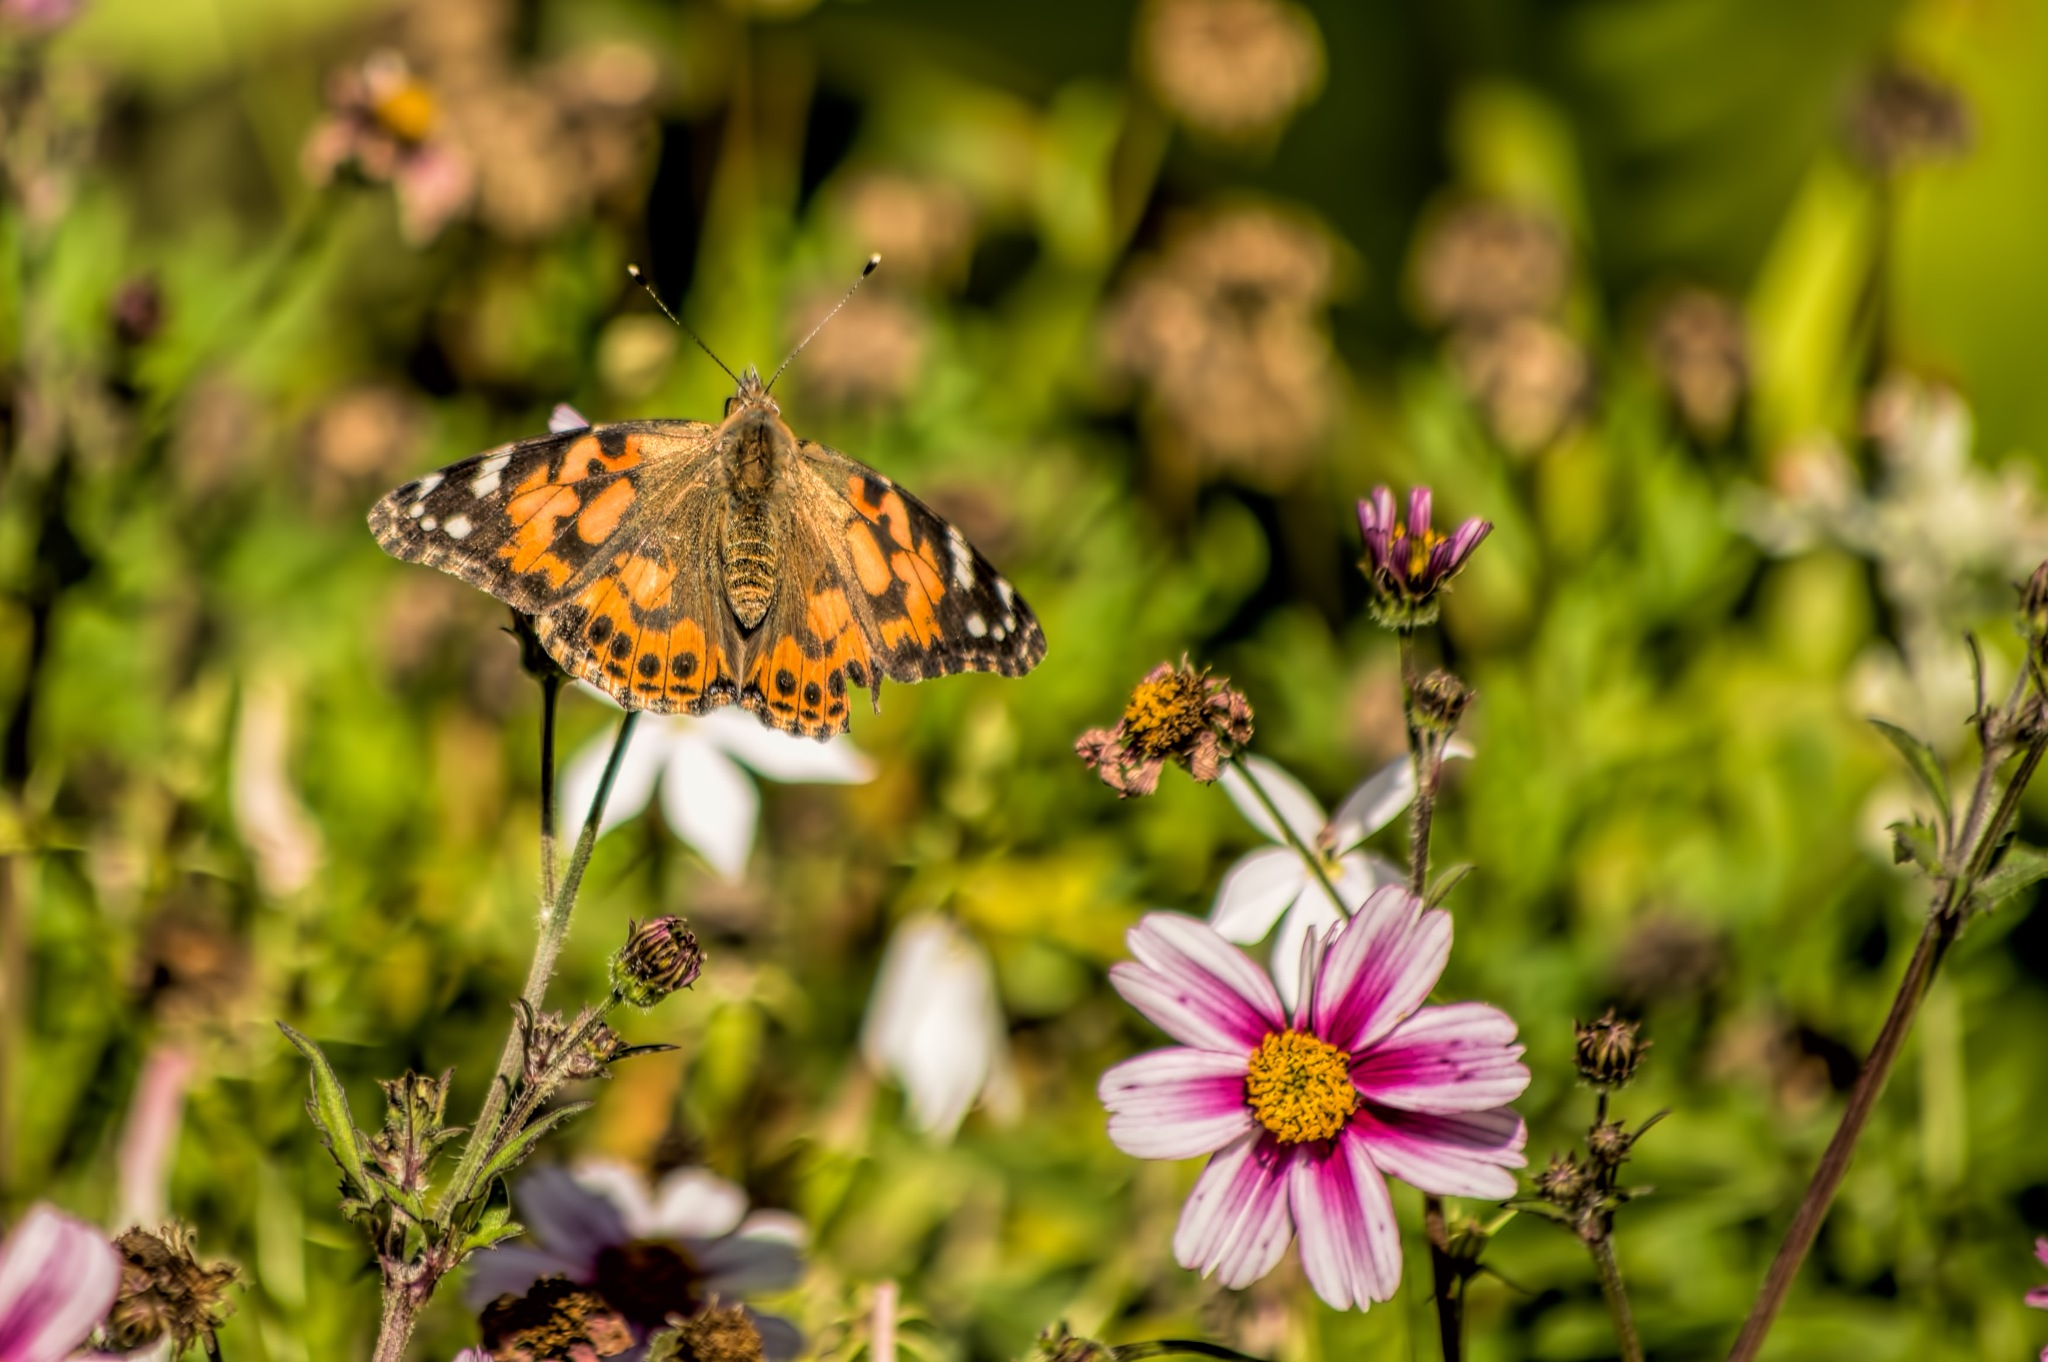 Butterfly in autumn by Micke Seise